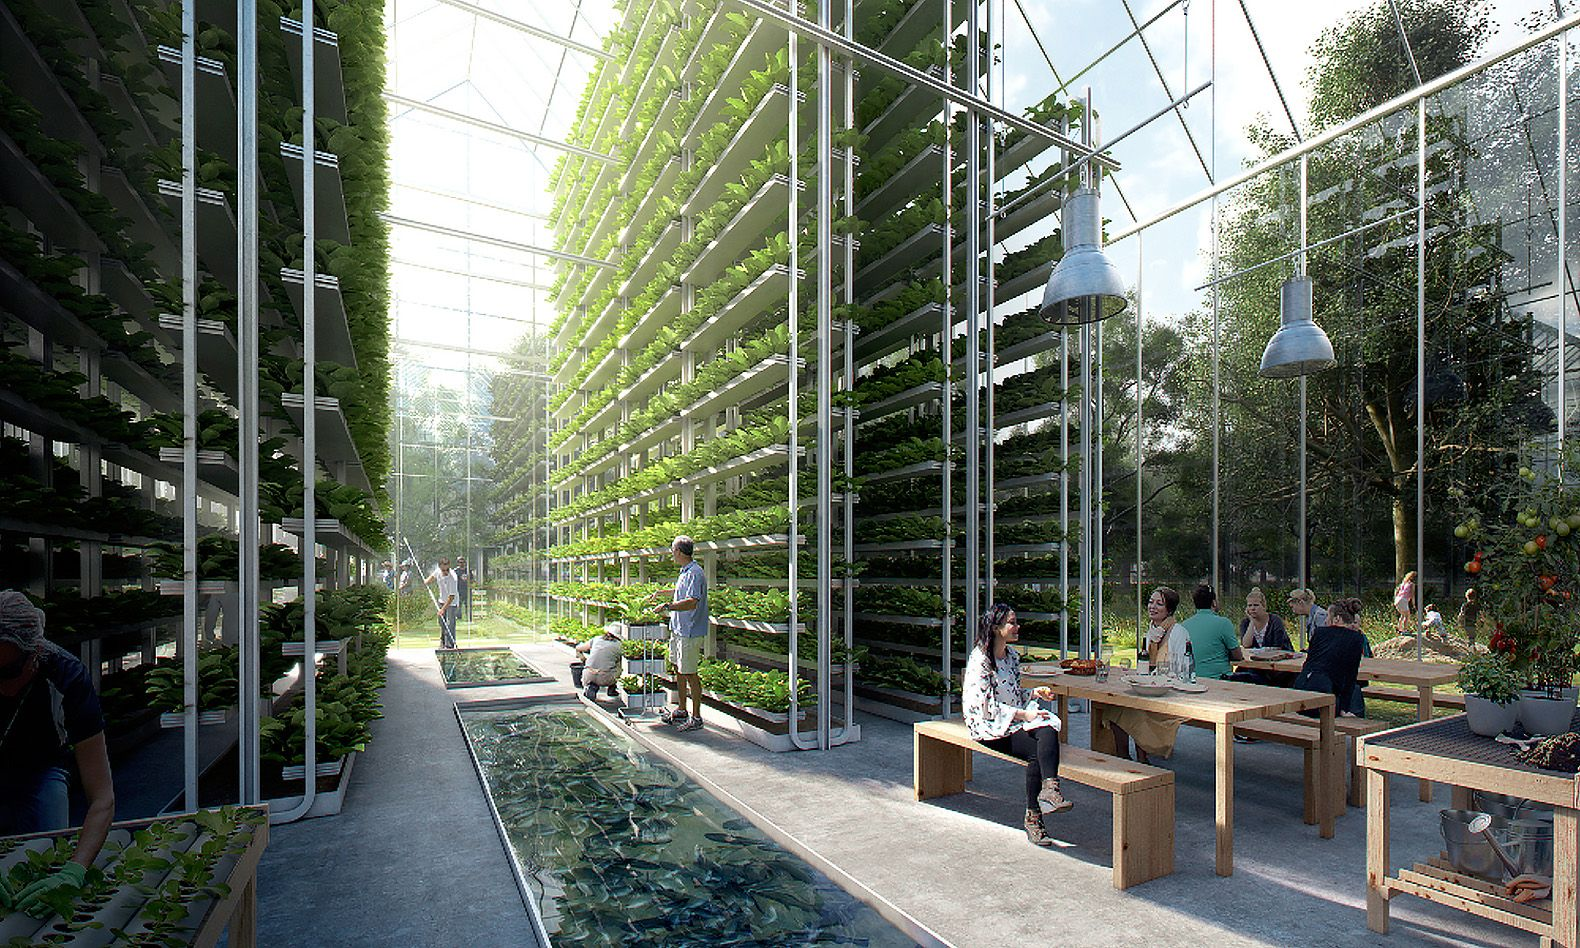 Utopian Off Grid Regen Village Produces All Of Its Own Food And